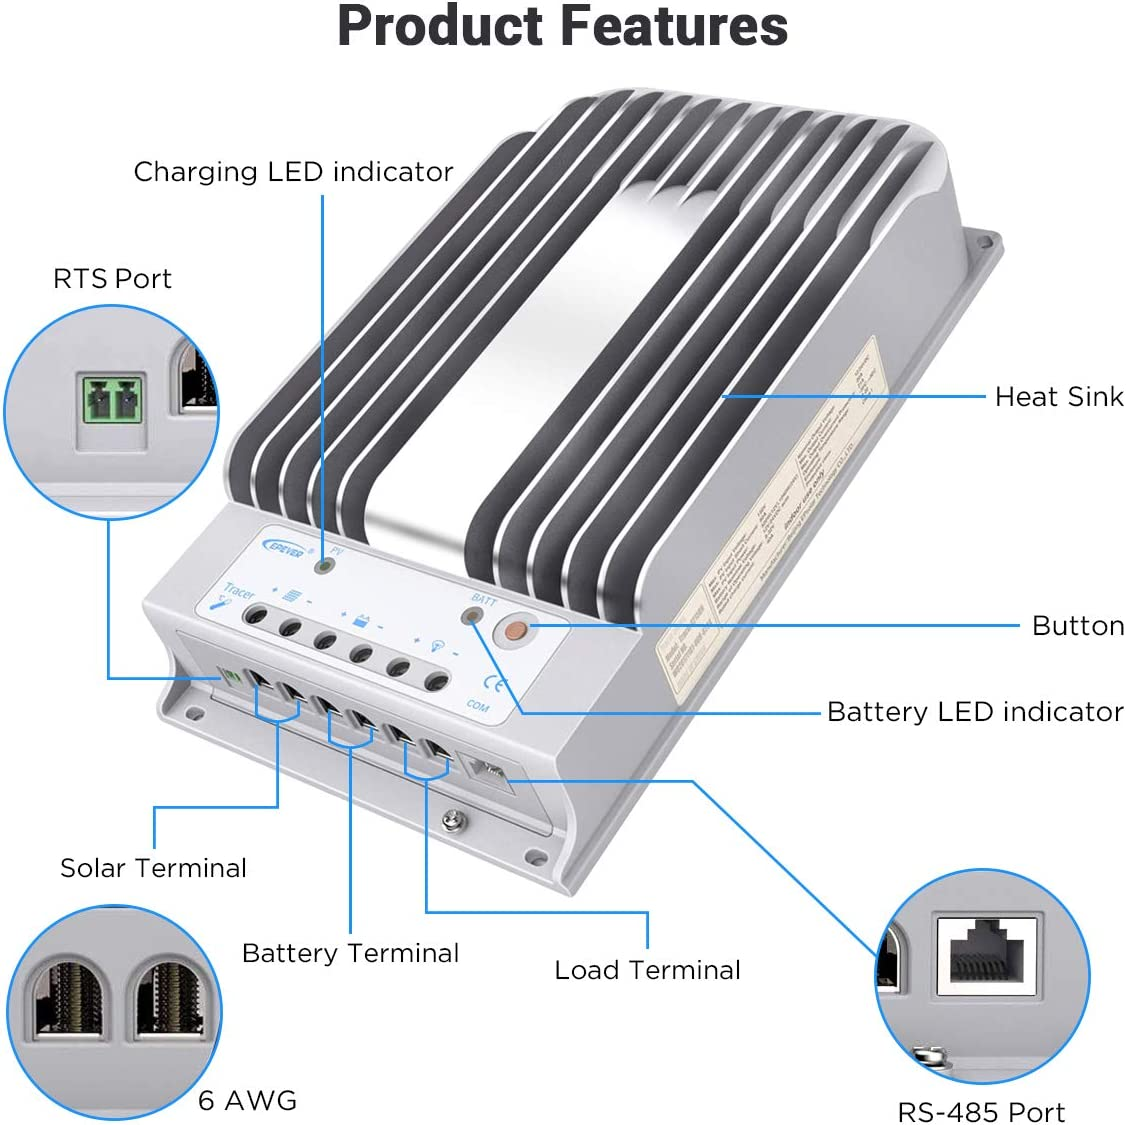 EPEVER 40A MPPT Solar Charge Controller 12V//24V Auto Working Max.PV 150V Solar Panel Charge Regulator Tracer BN Series Negative Ground Solar Controller